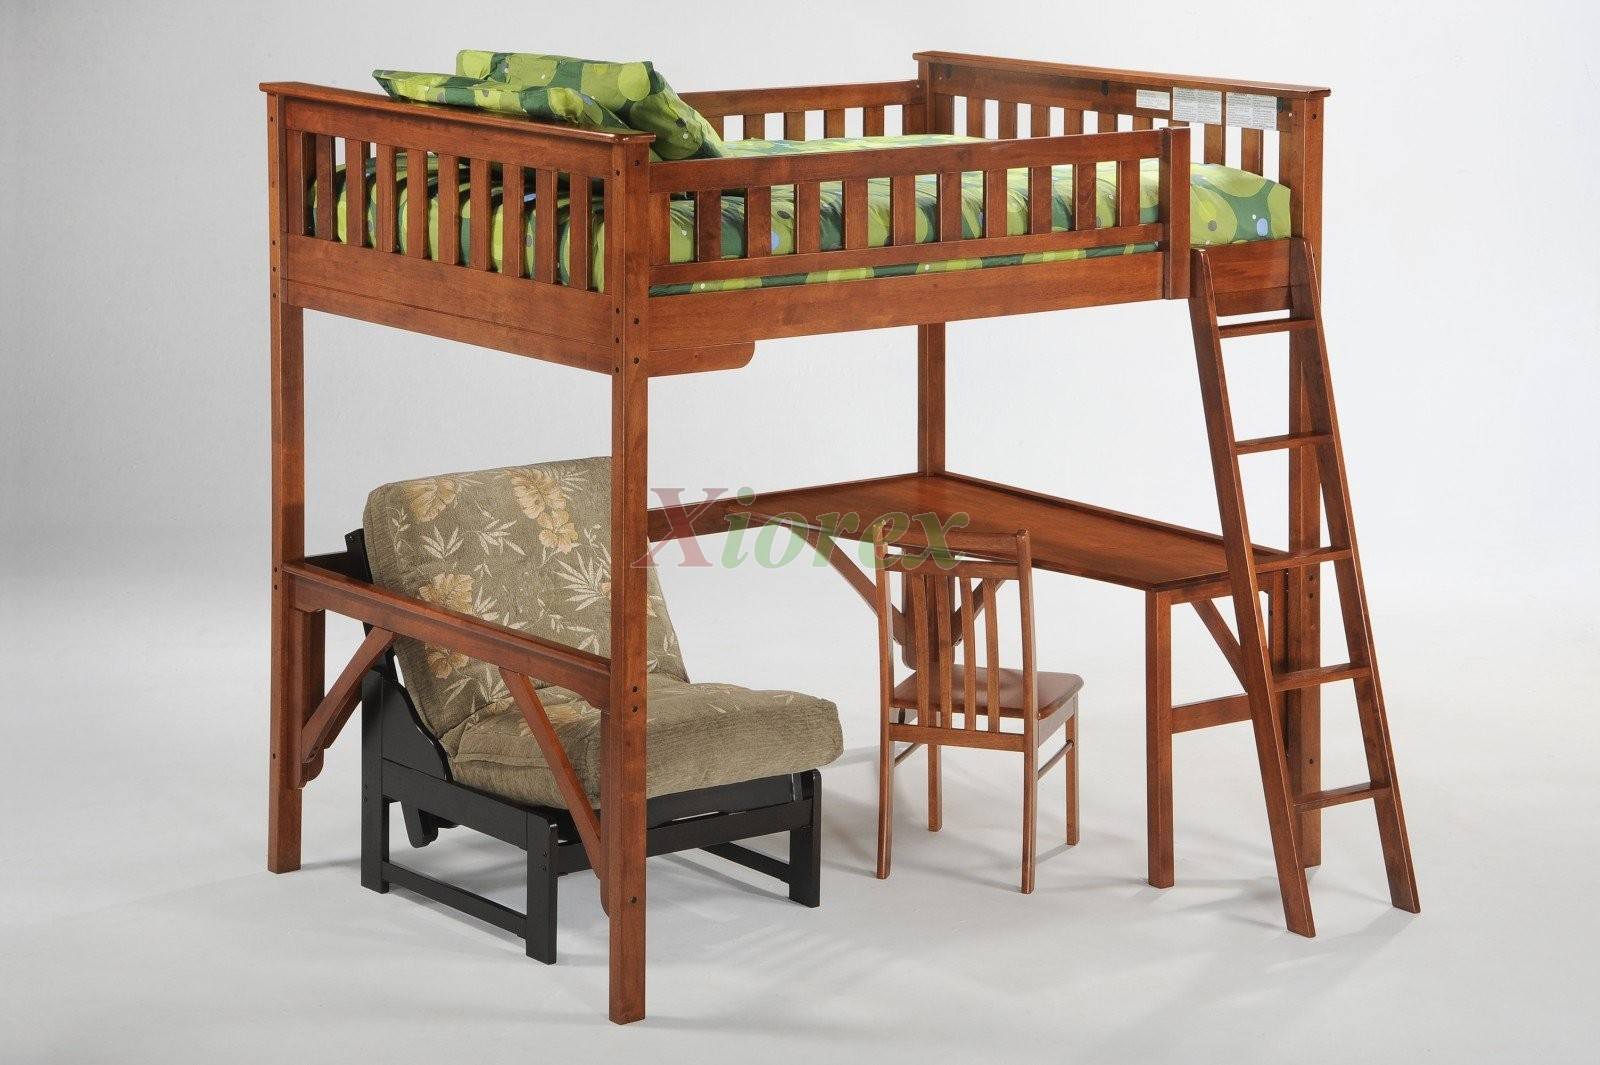 Ginger Twin Amp Full Size Loft Bunk Beds With Desk By Night